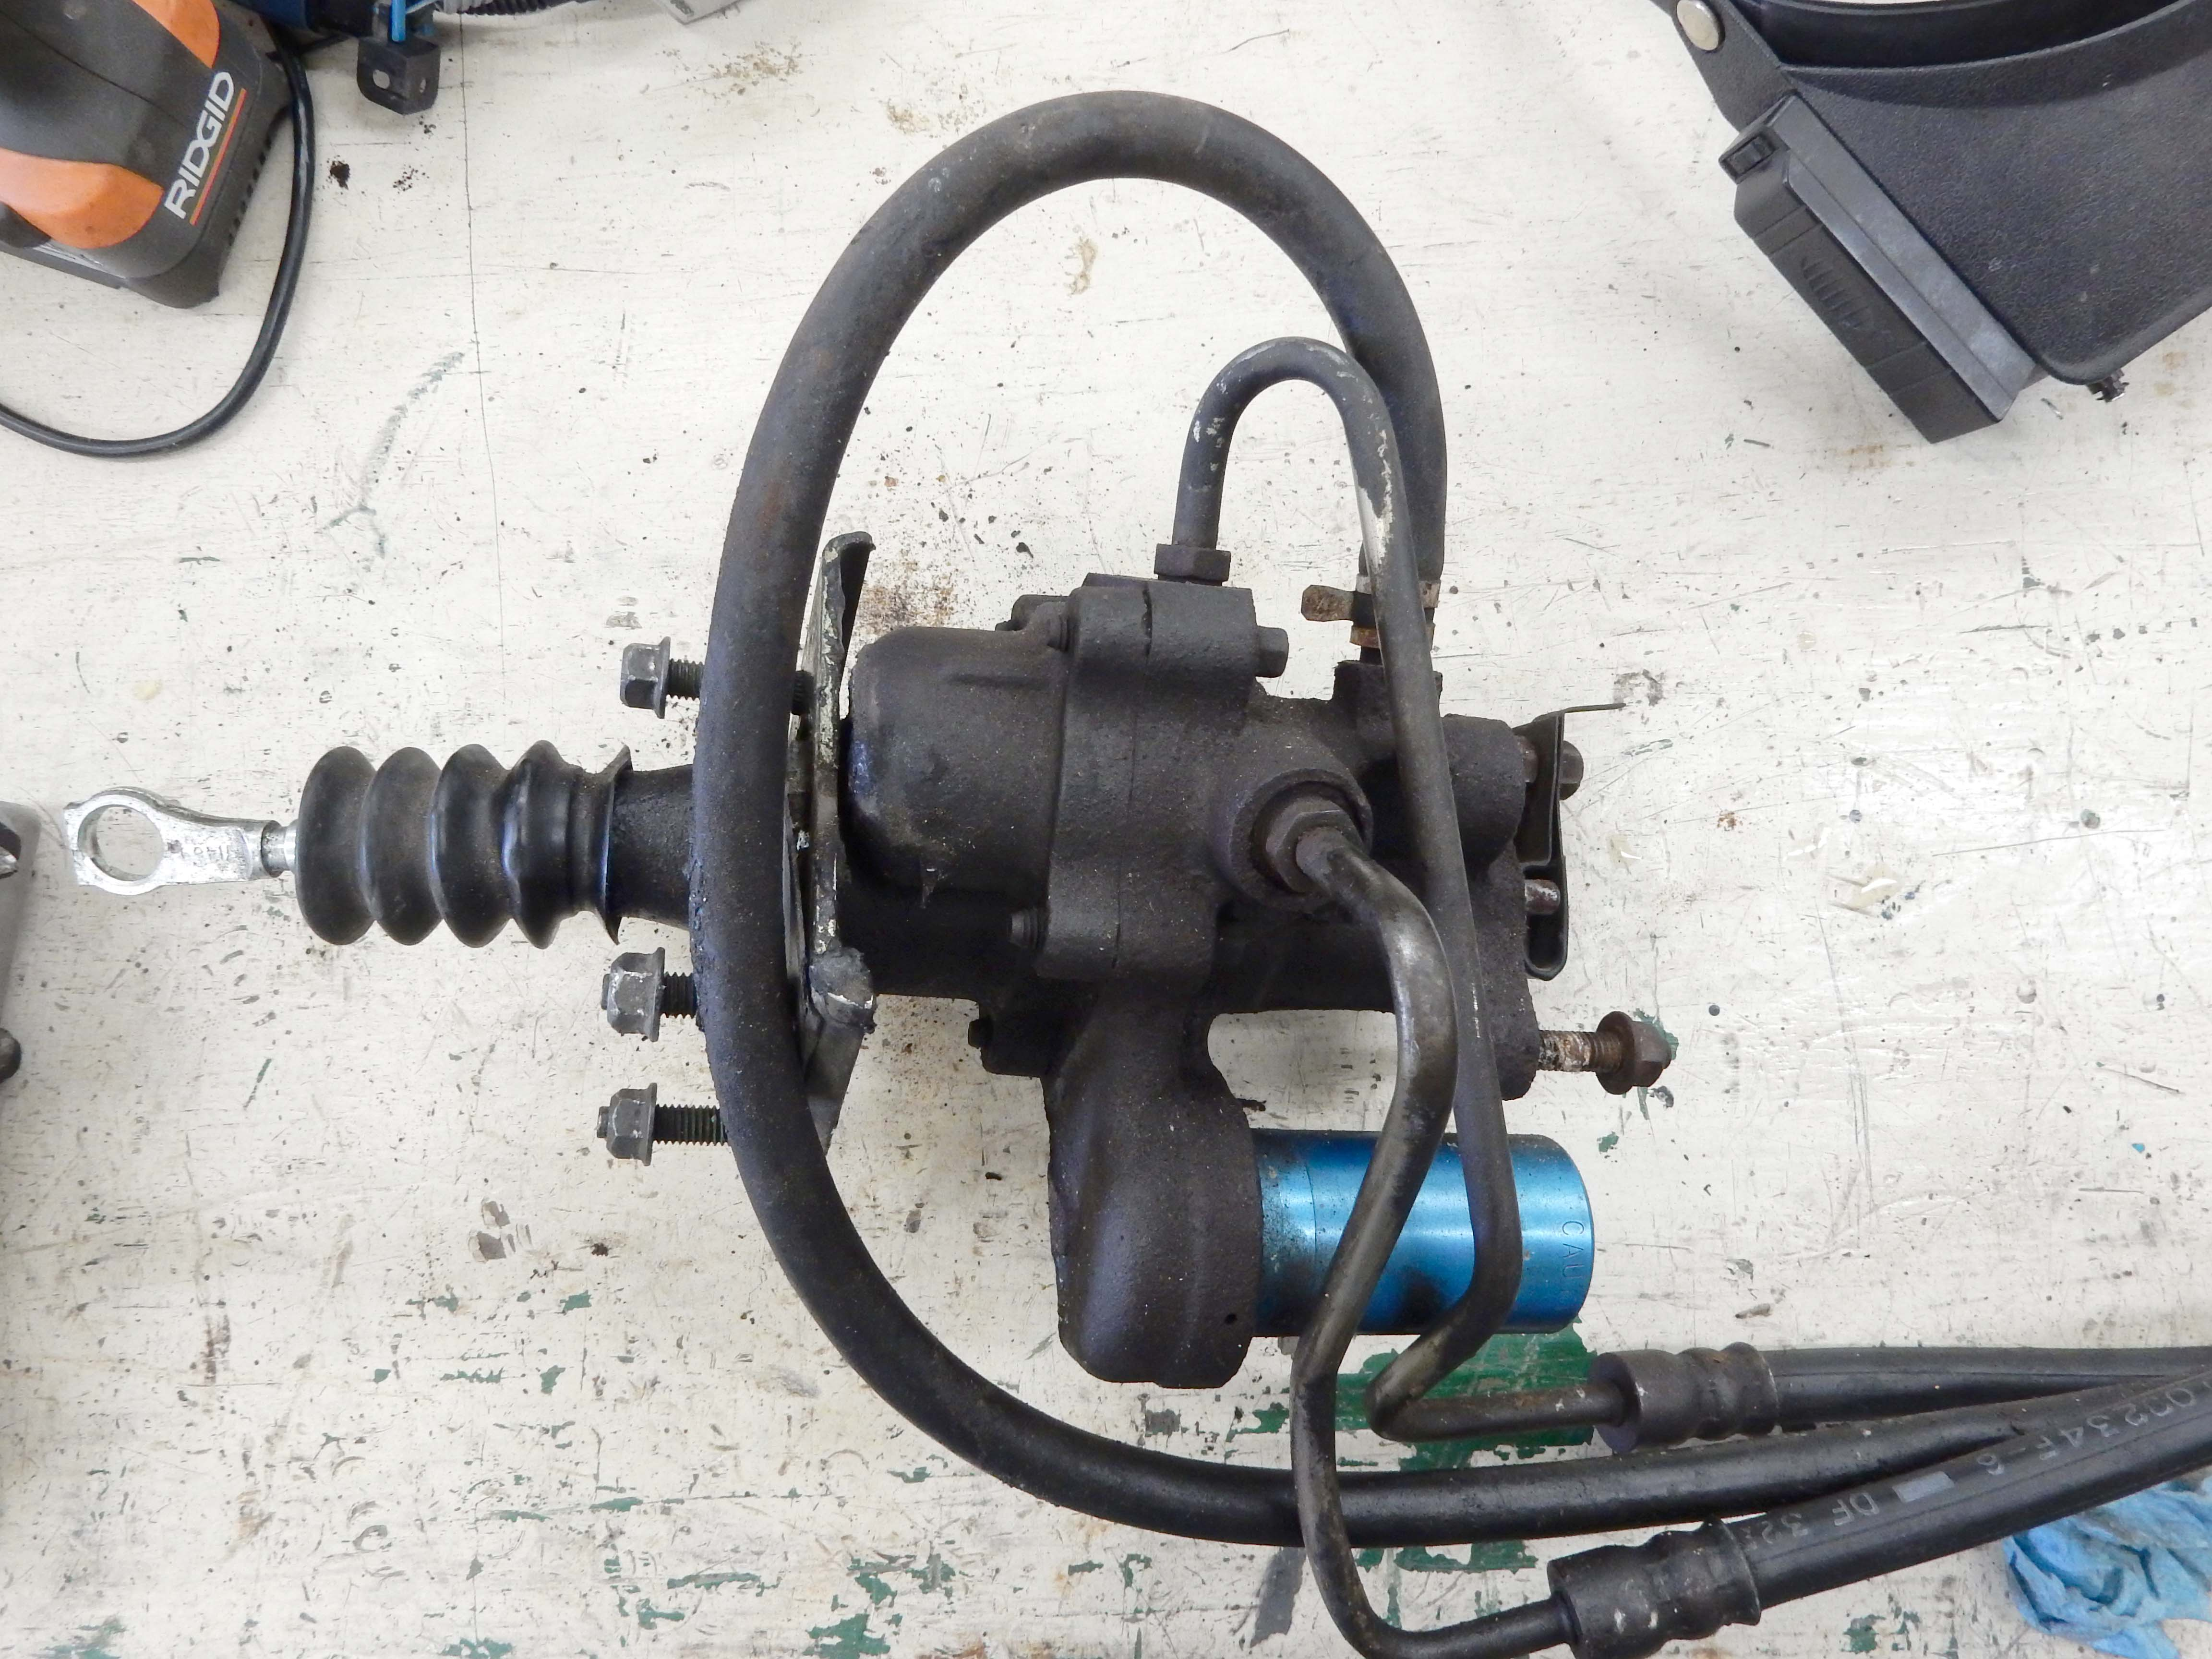 Bullnose Enthusiasts - Hydroboost brake conversion | Page 2